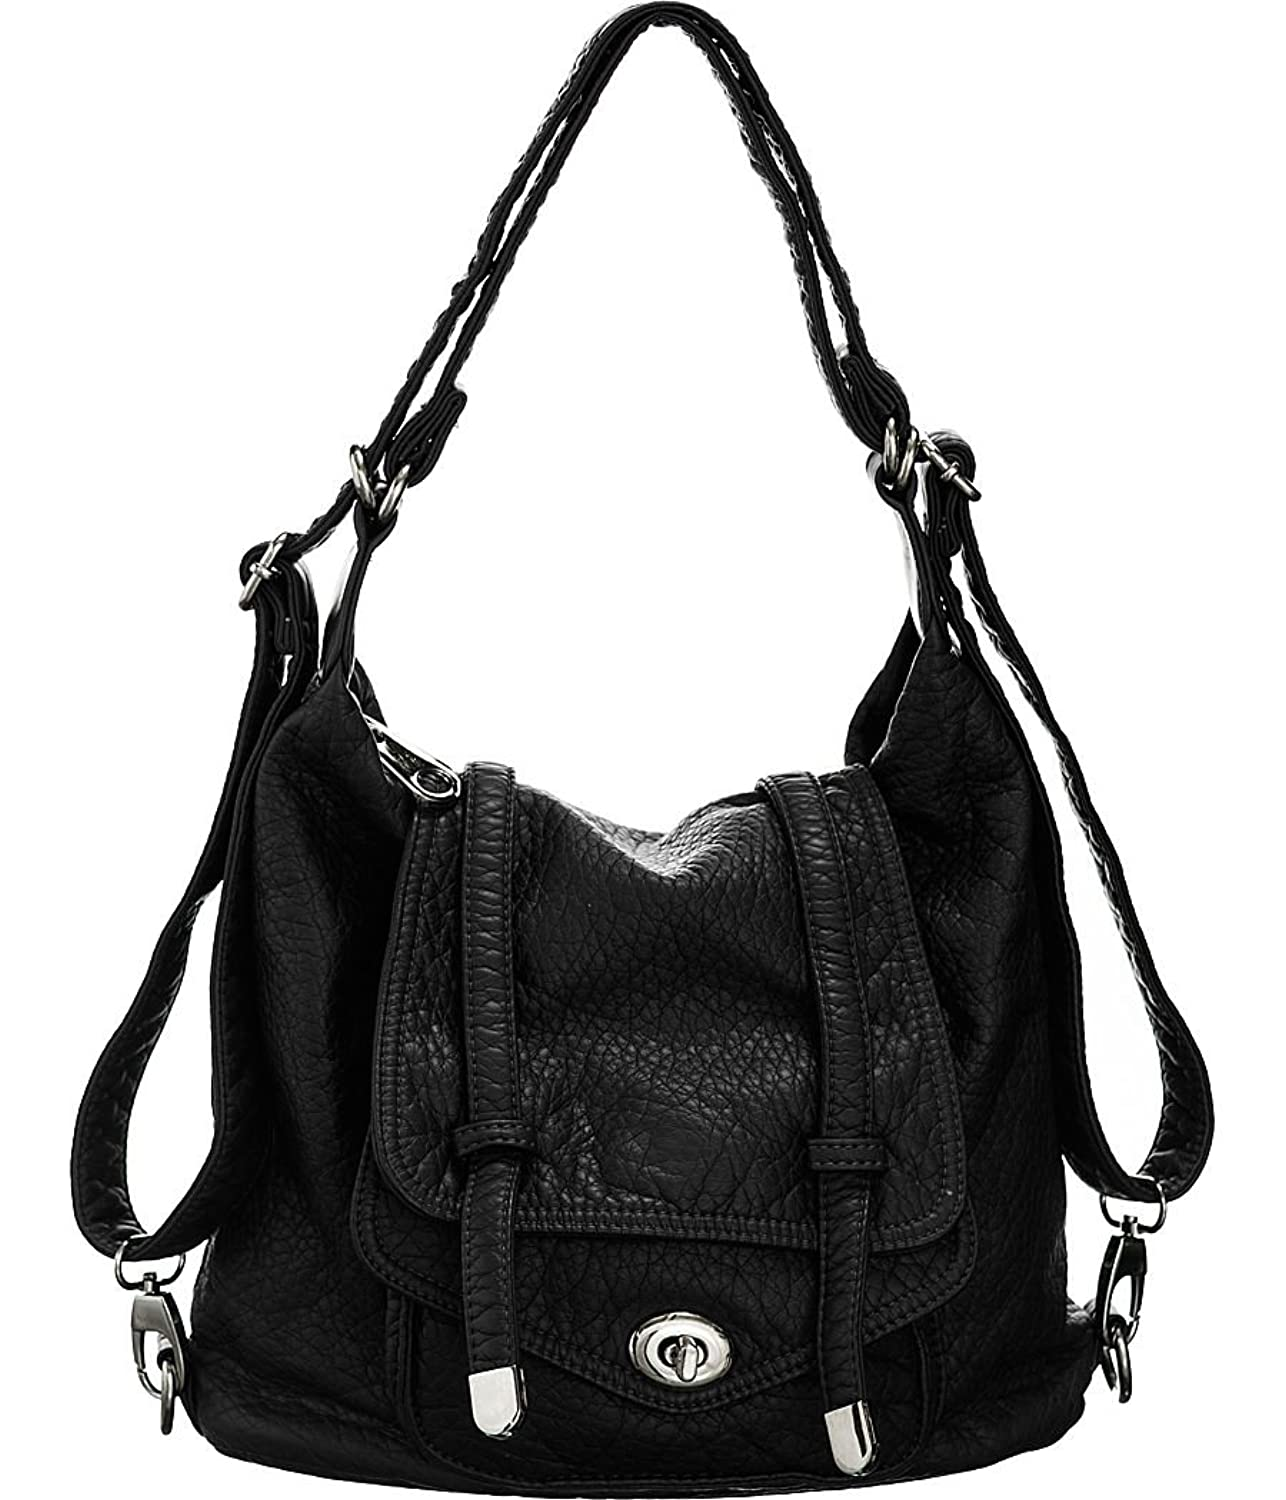 Handbag Backpack Convertible Backpack-convertible